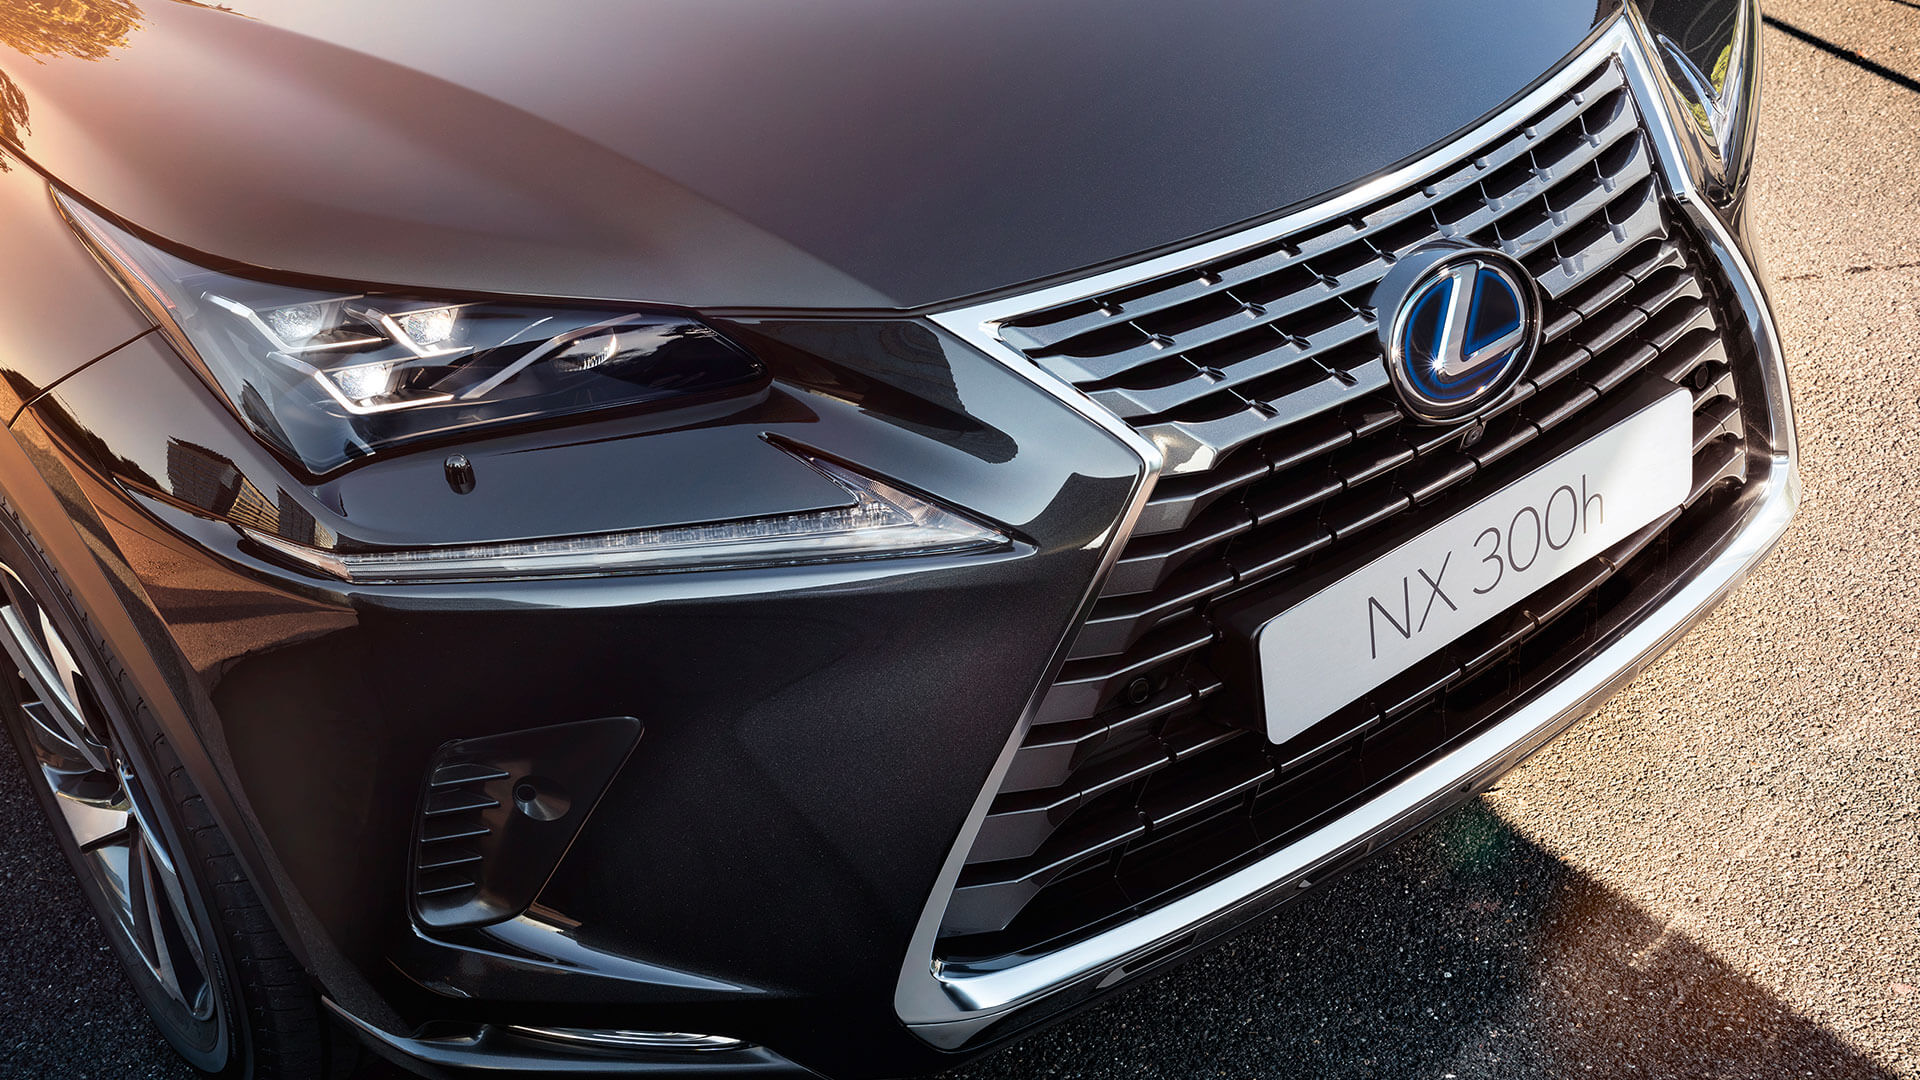 2018 lexus nx my18 features spindle grille